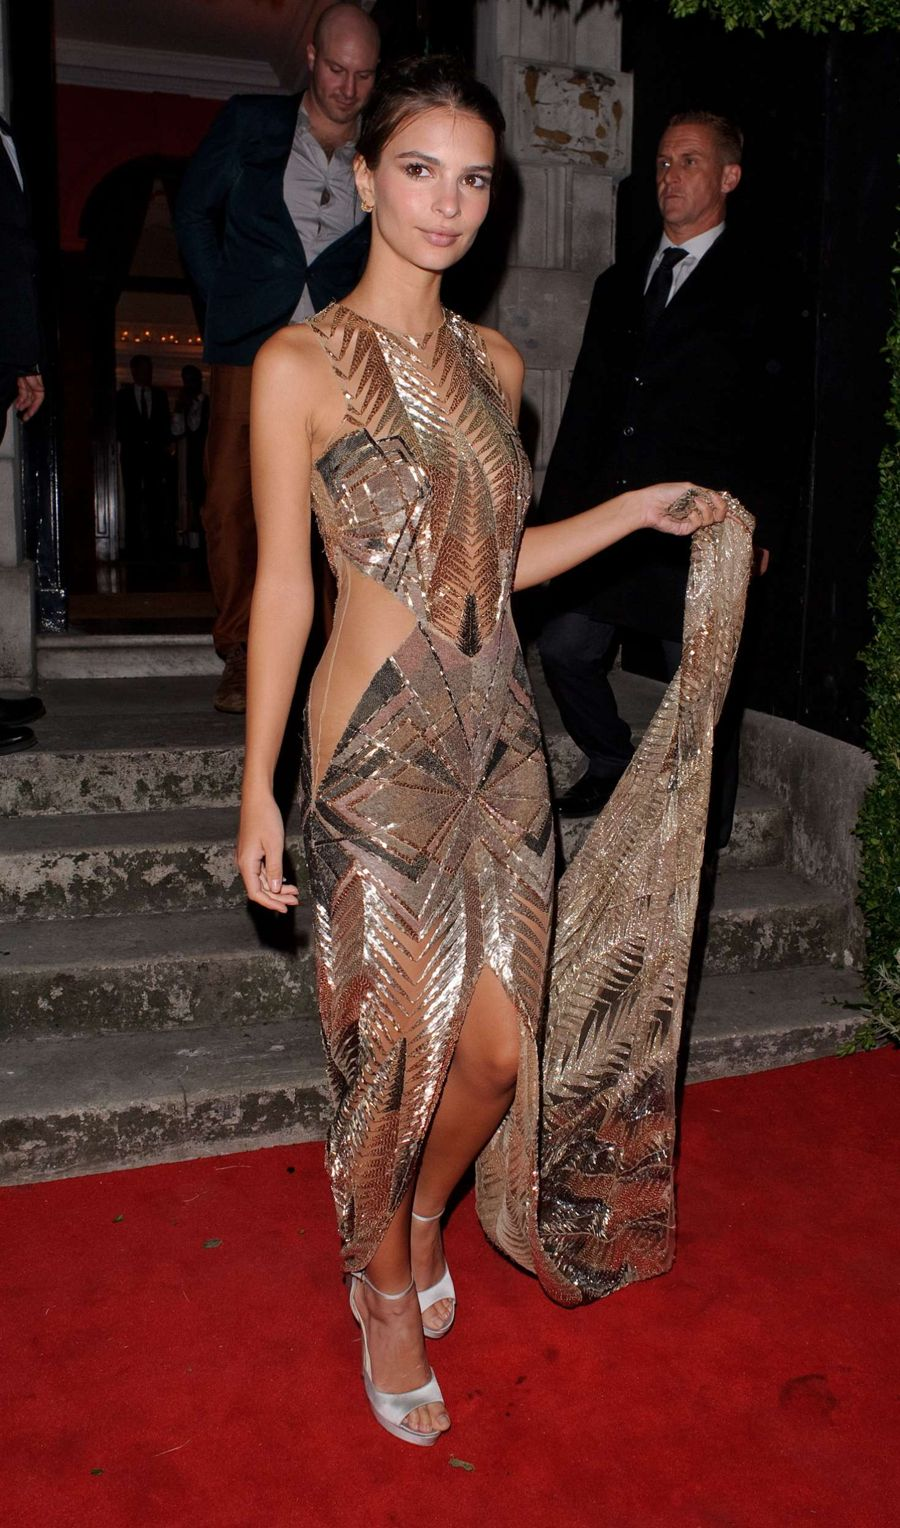 Emily Ratajkowski breathtaking in Gold Gown at Annabel's